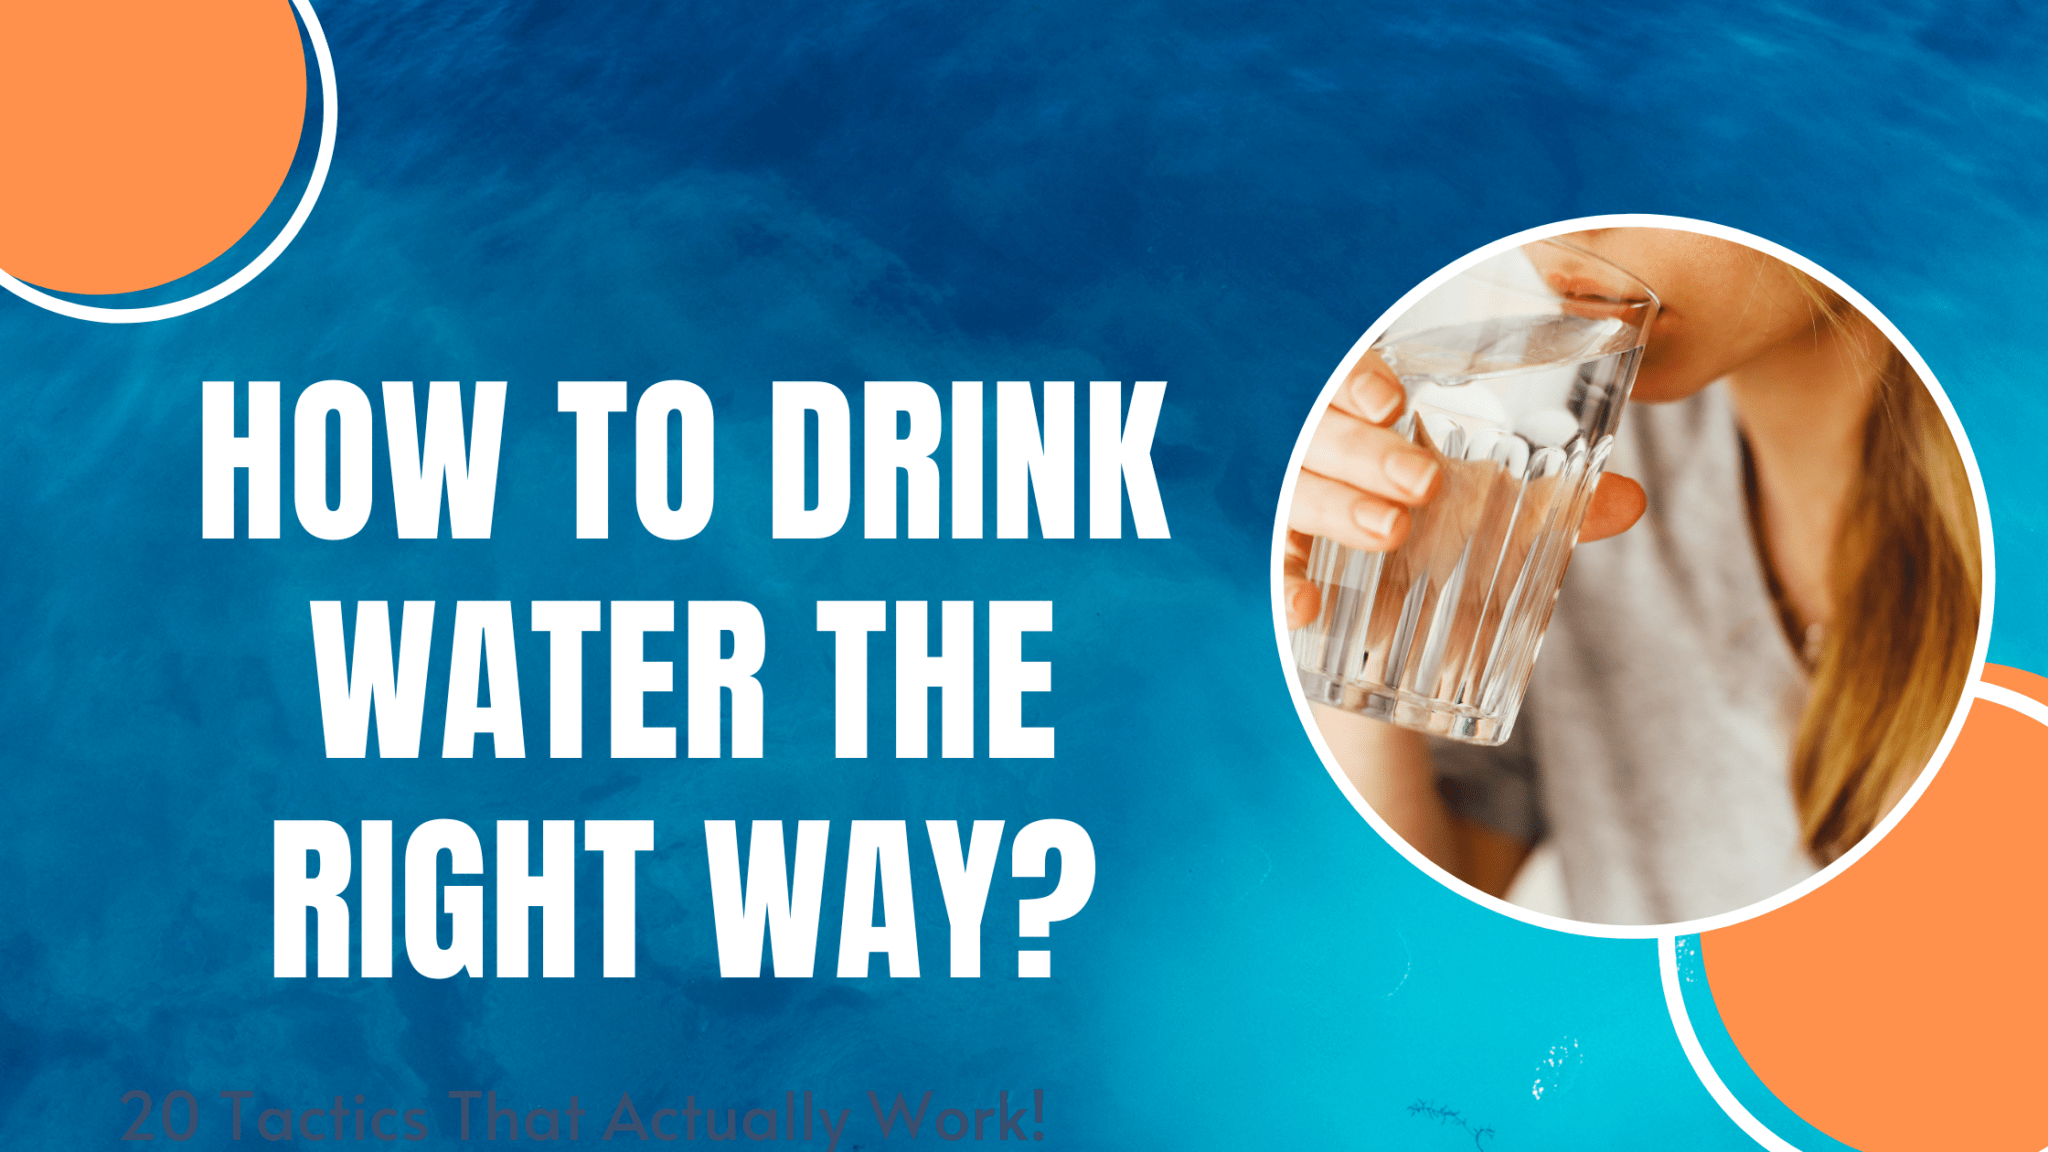 How to drink water the right way? Mistakes to avoid when drinking water.